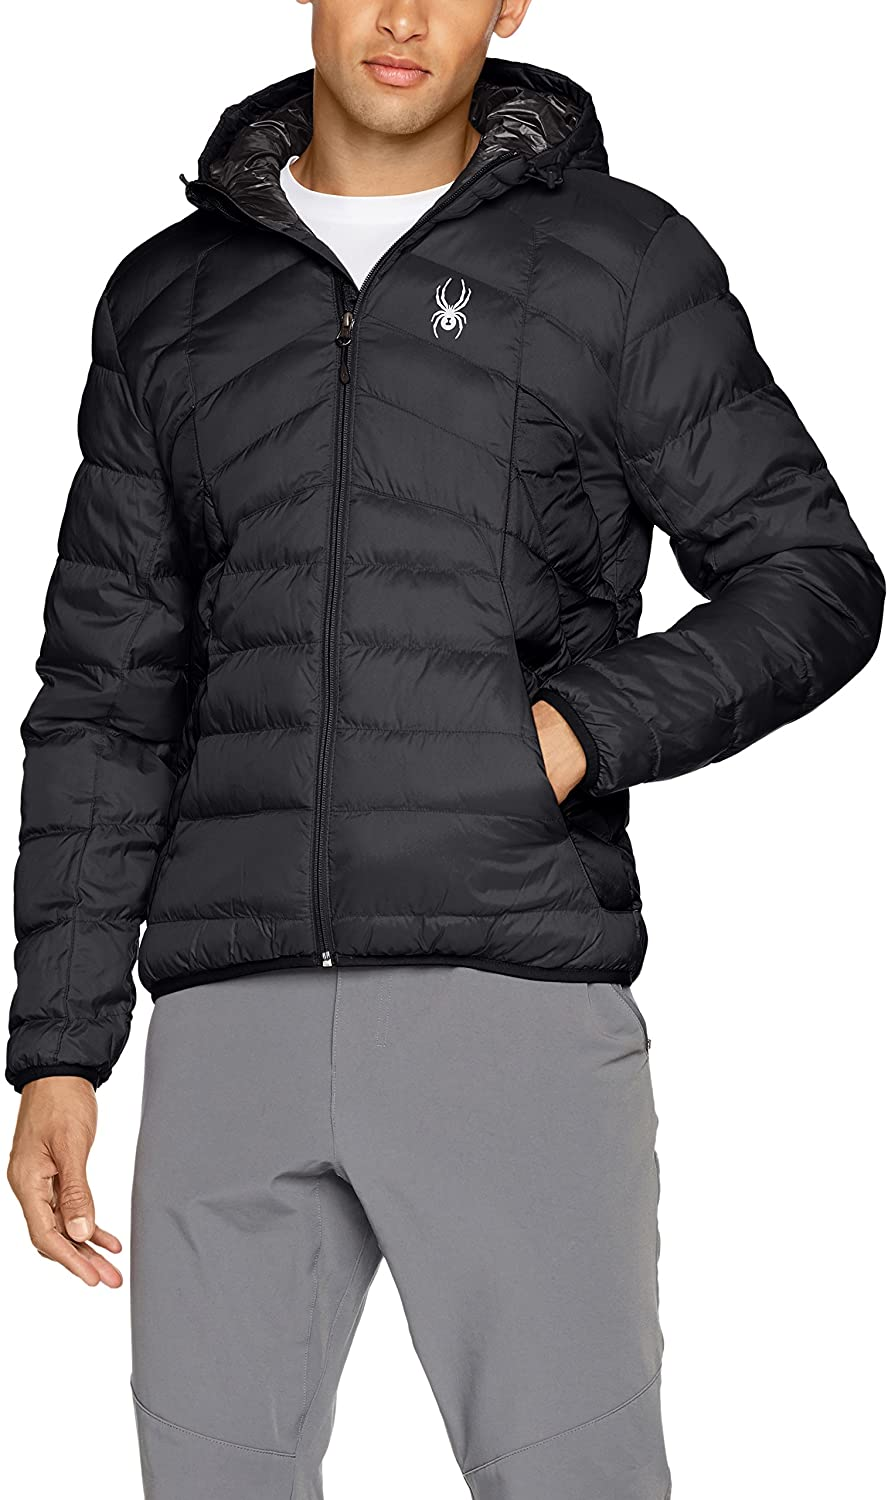 Spyder Mens Geared Hoody Synthetic Down Jacket, Black/Black, X-Large